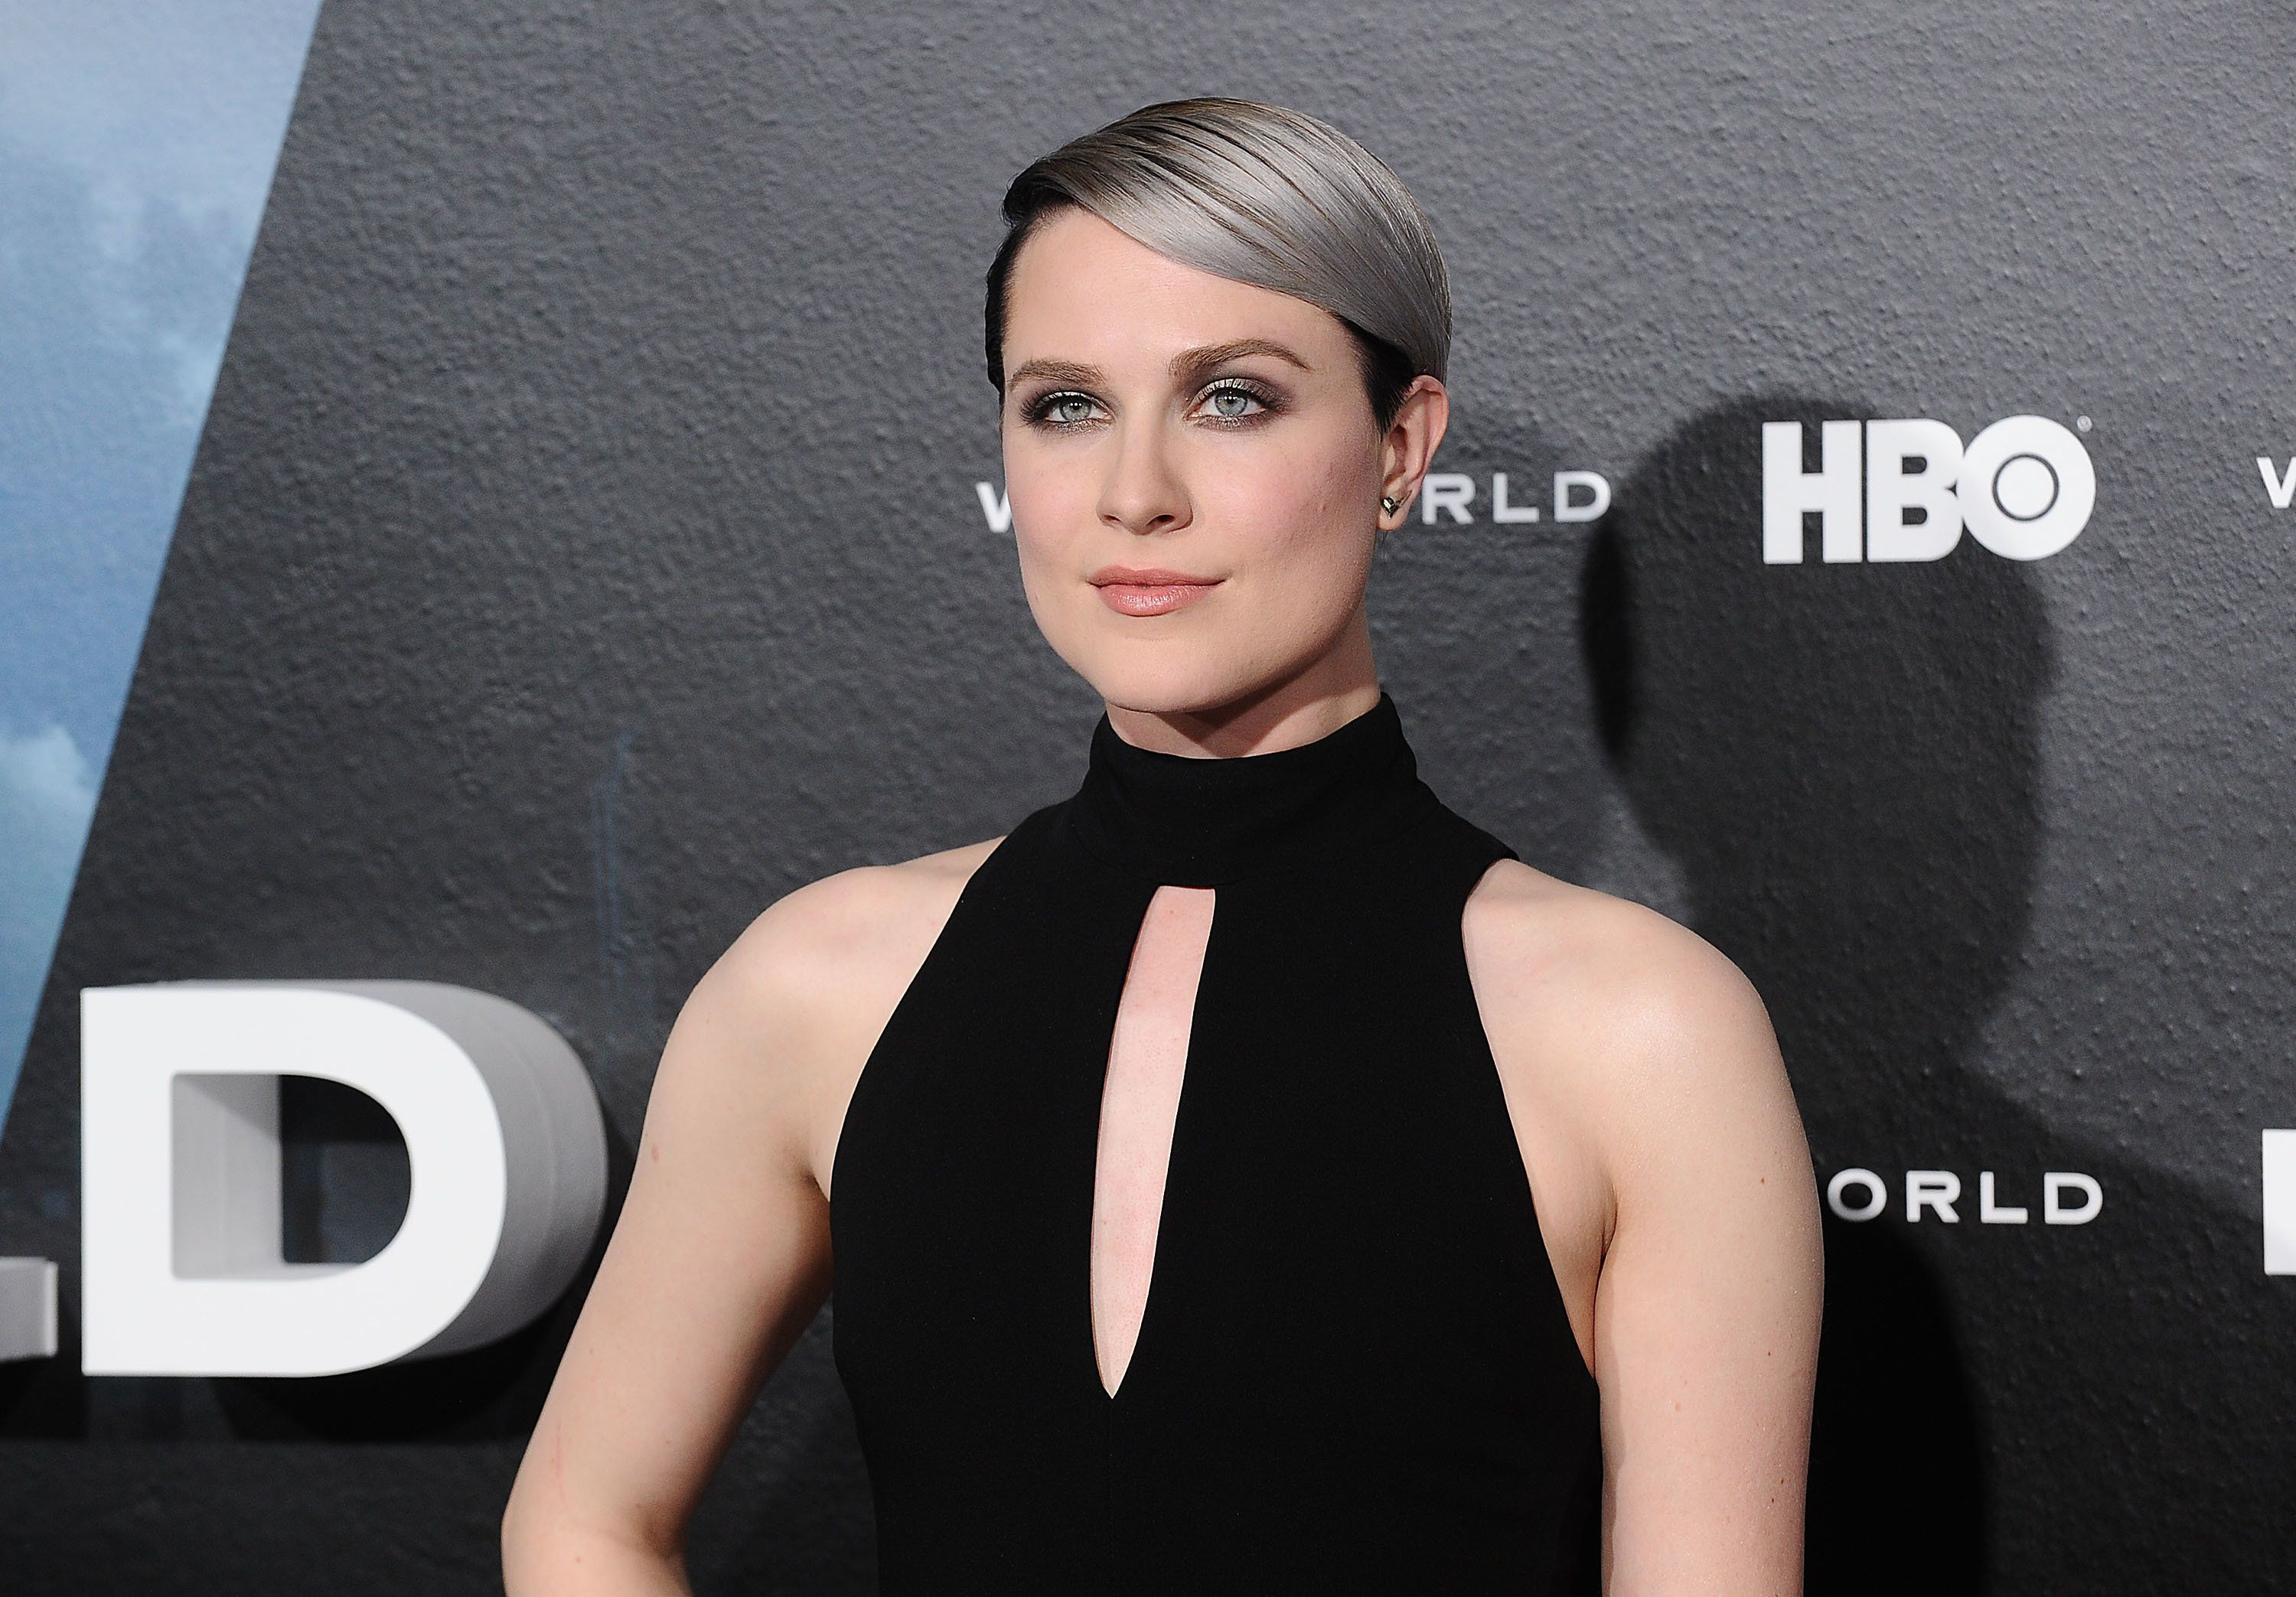 Evan Rachel Wood On How 'Westworld' Helped Her 'Make Peace' With Past Sexual